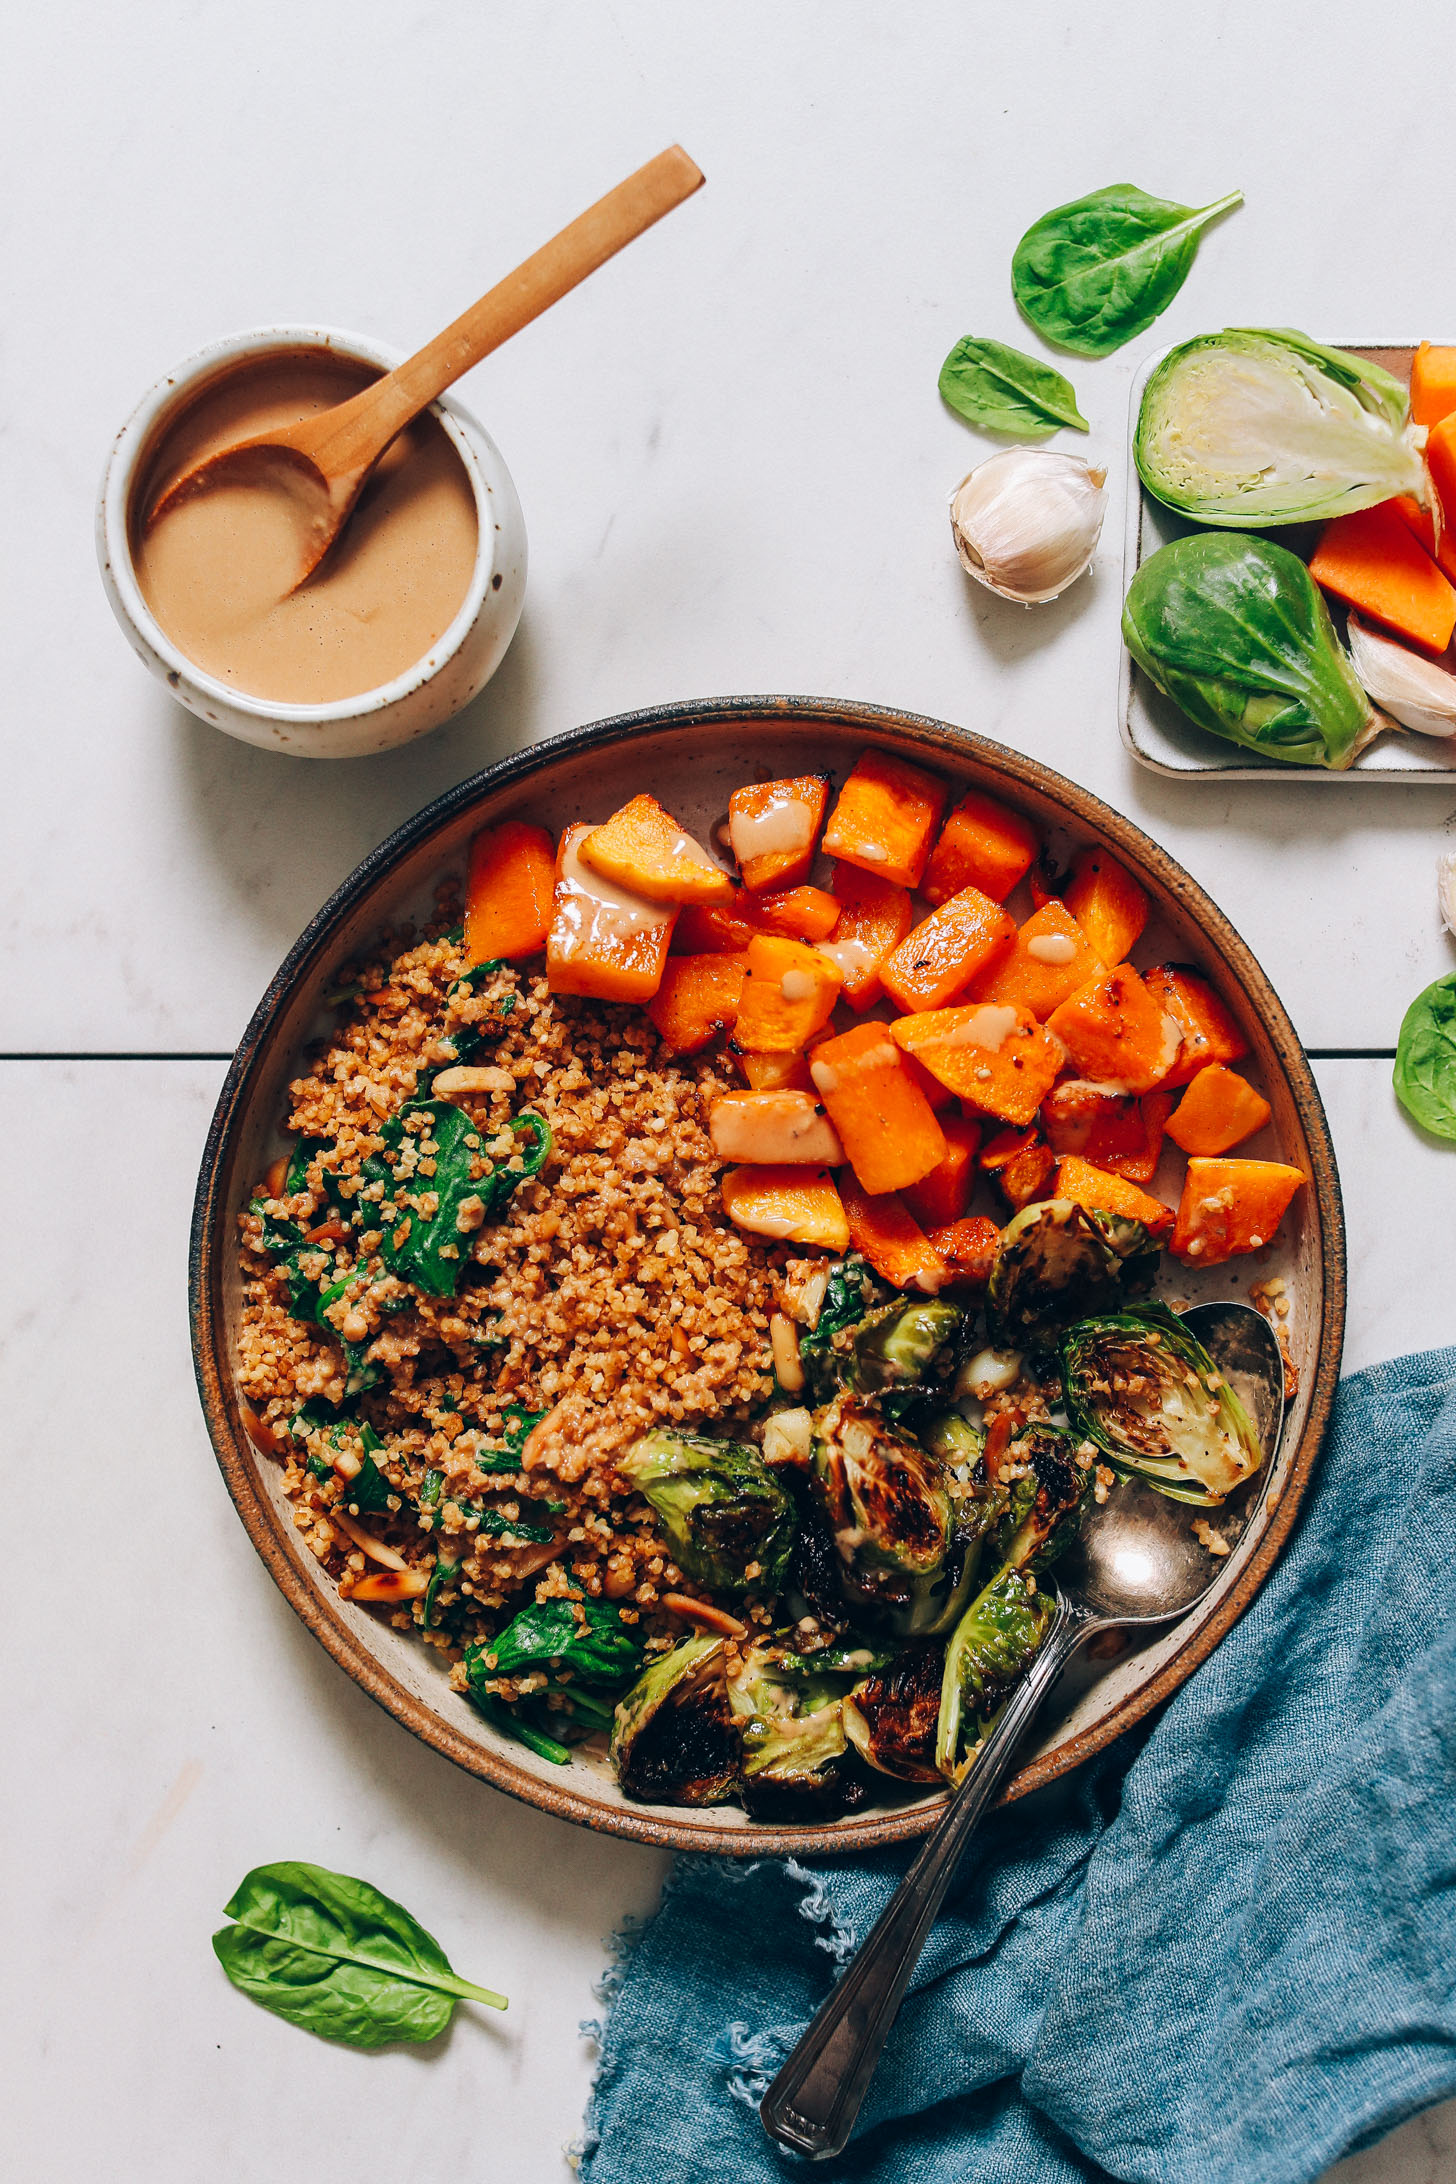 Fall nourish bowl made with squash, brussels sprouts, millet, and garlicky tahini sauce